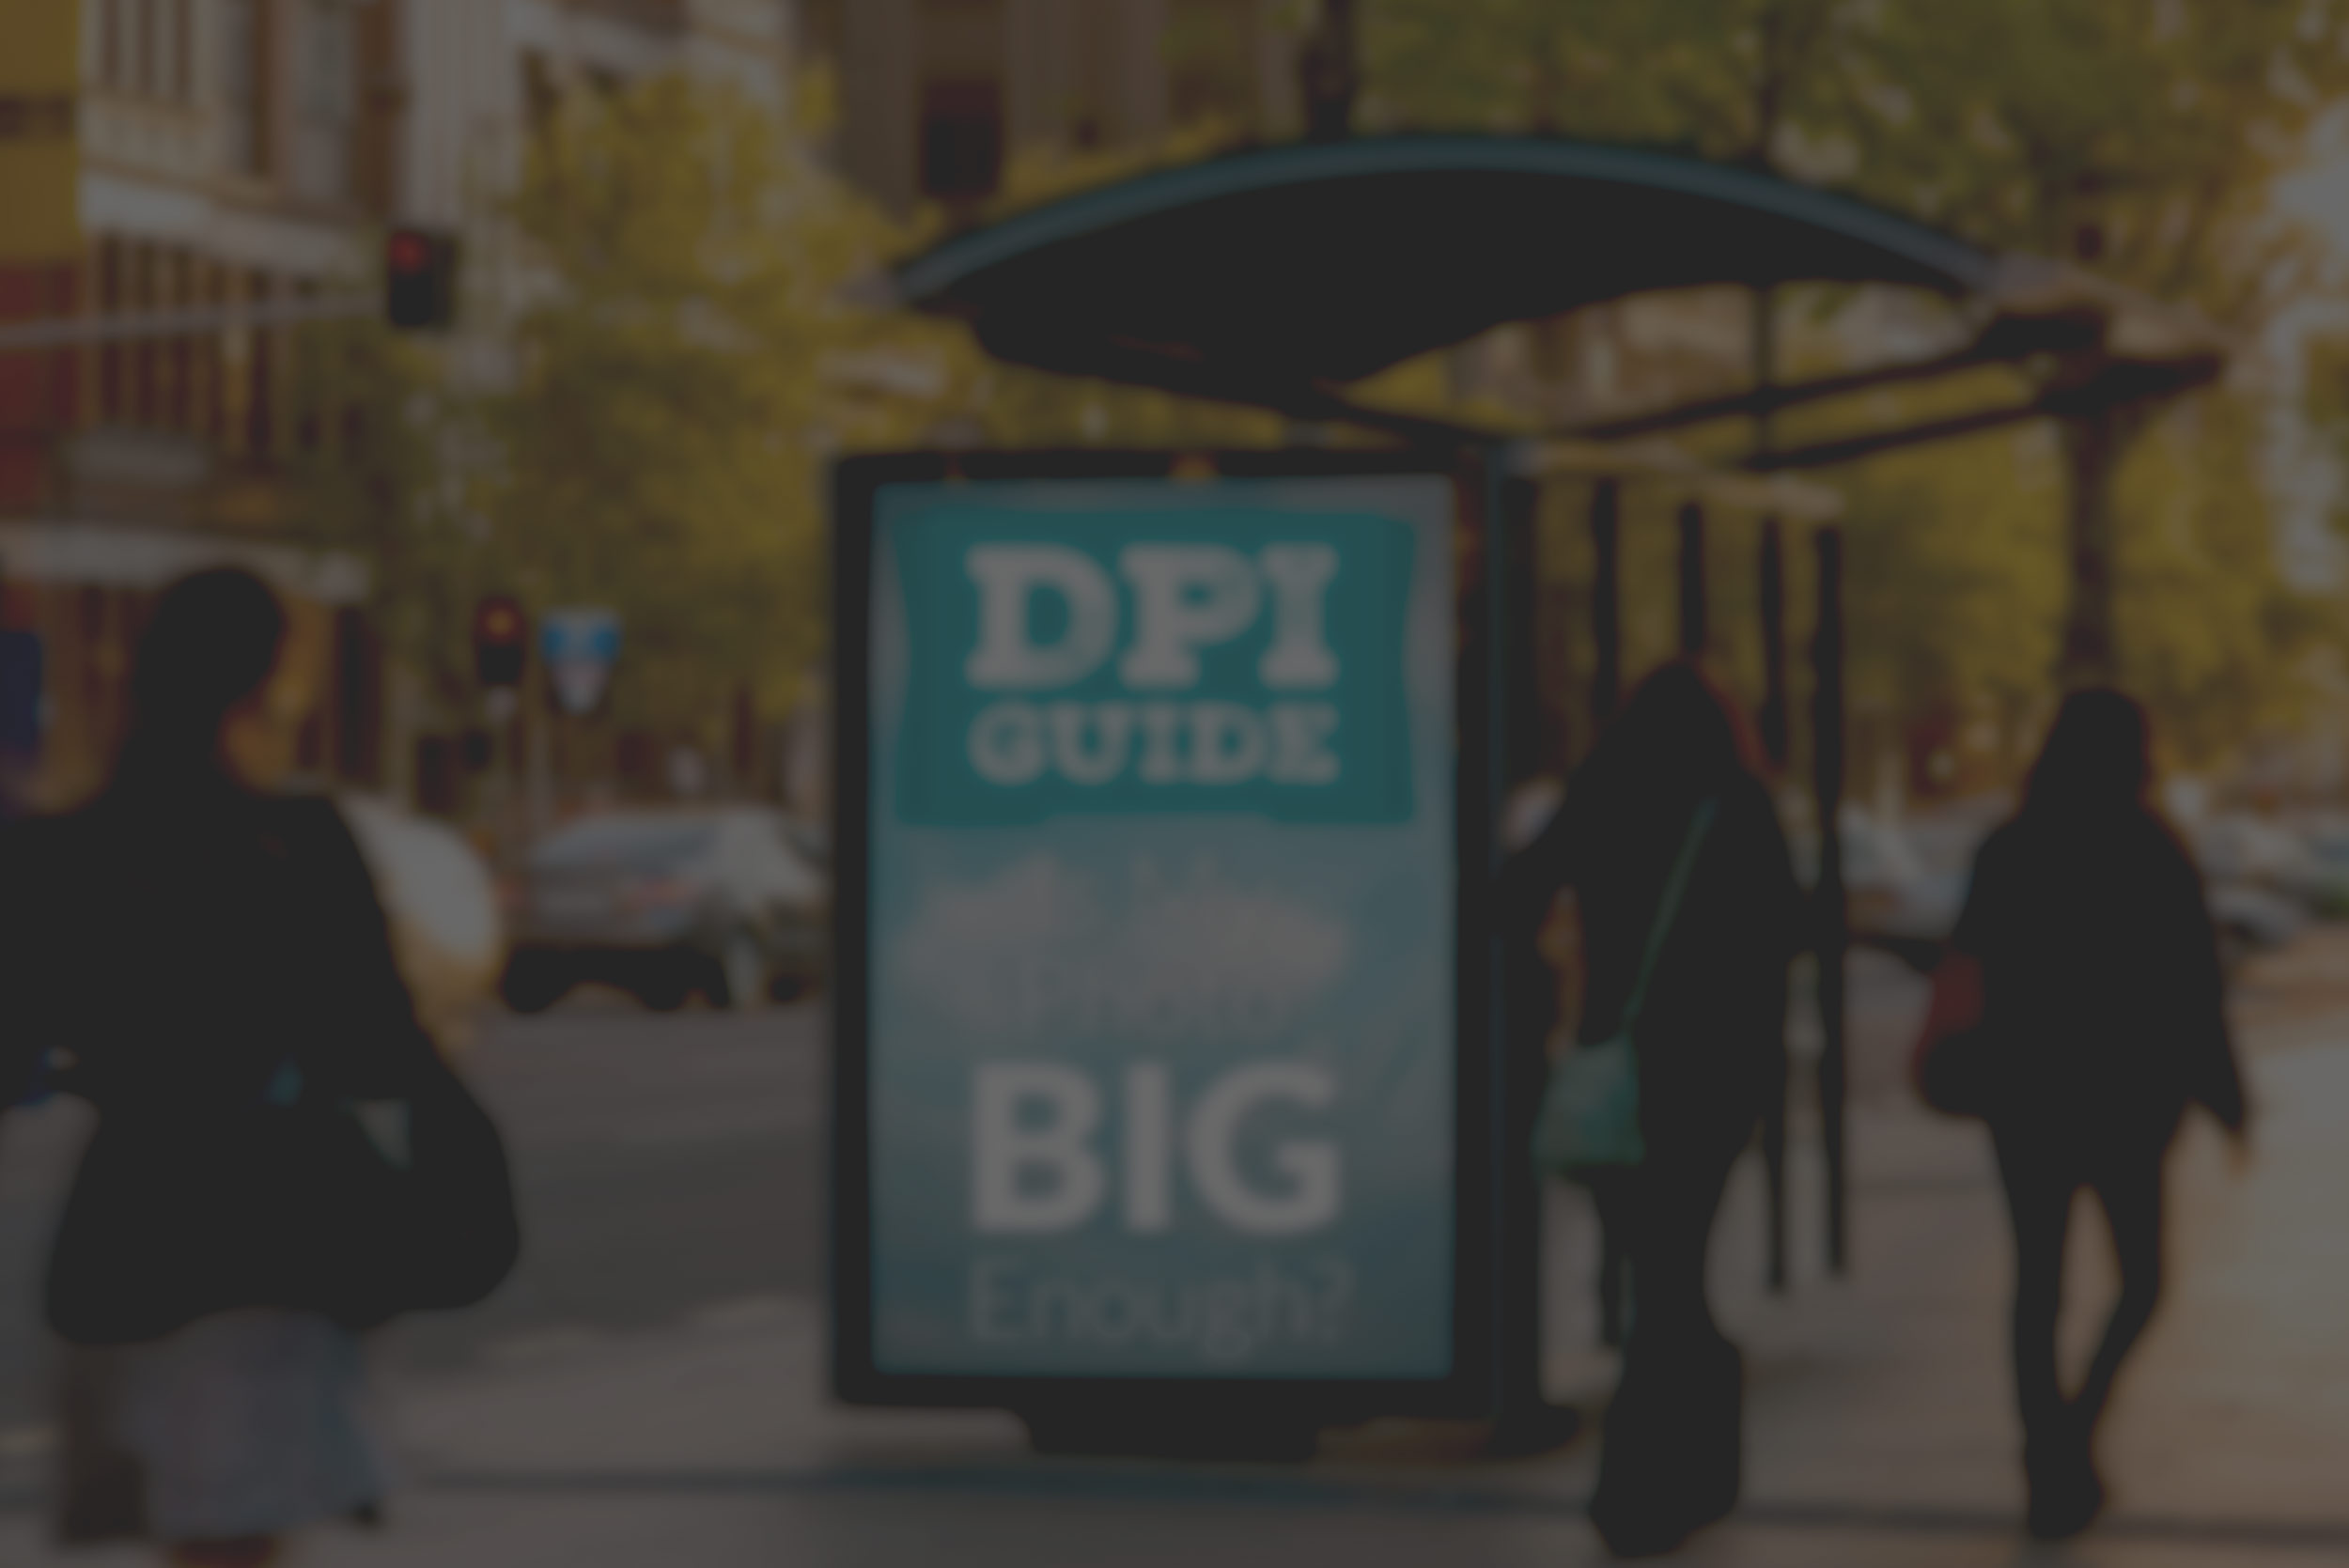 DPI Guide: Is My Photo Big Enough?